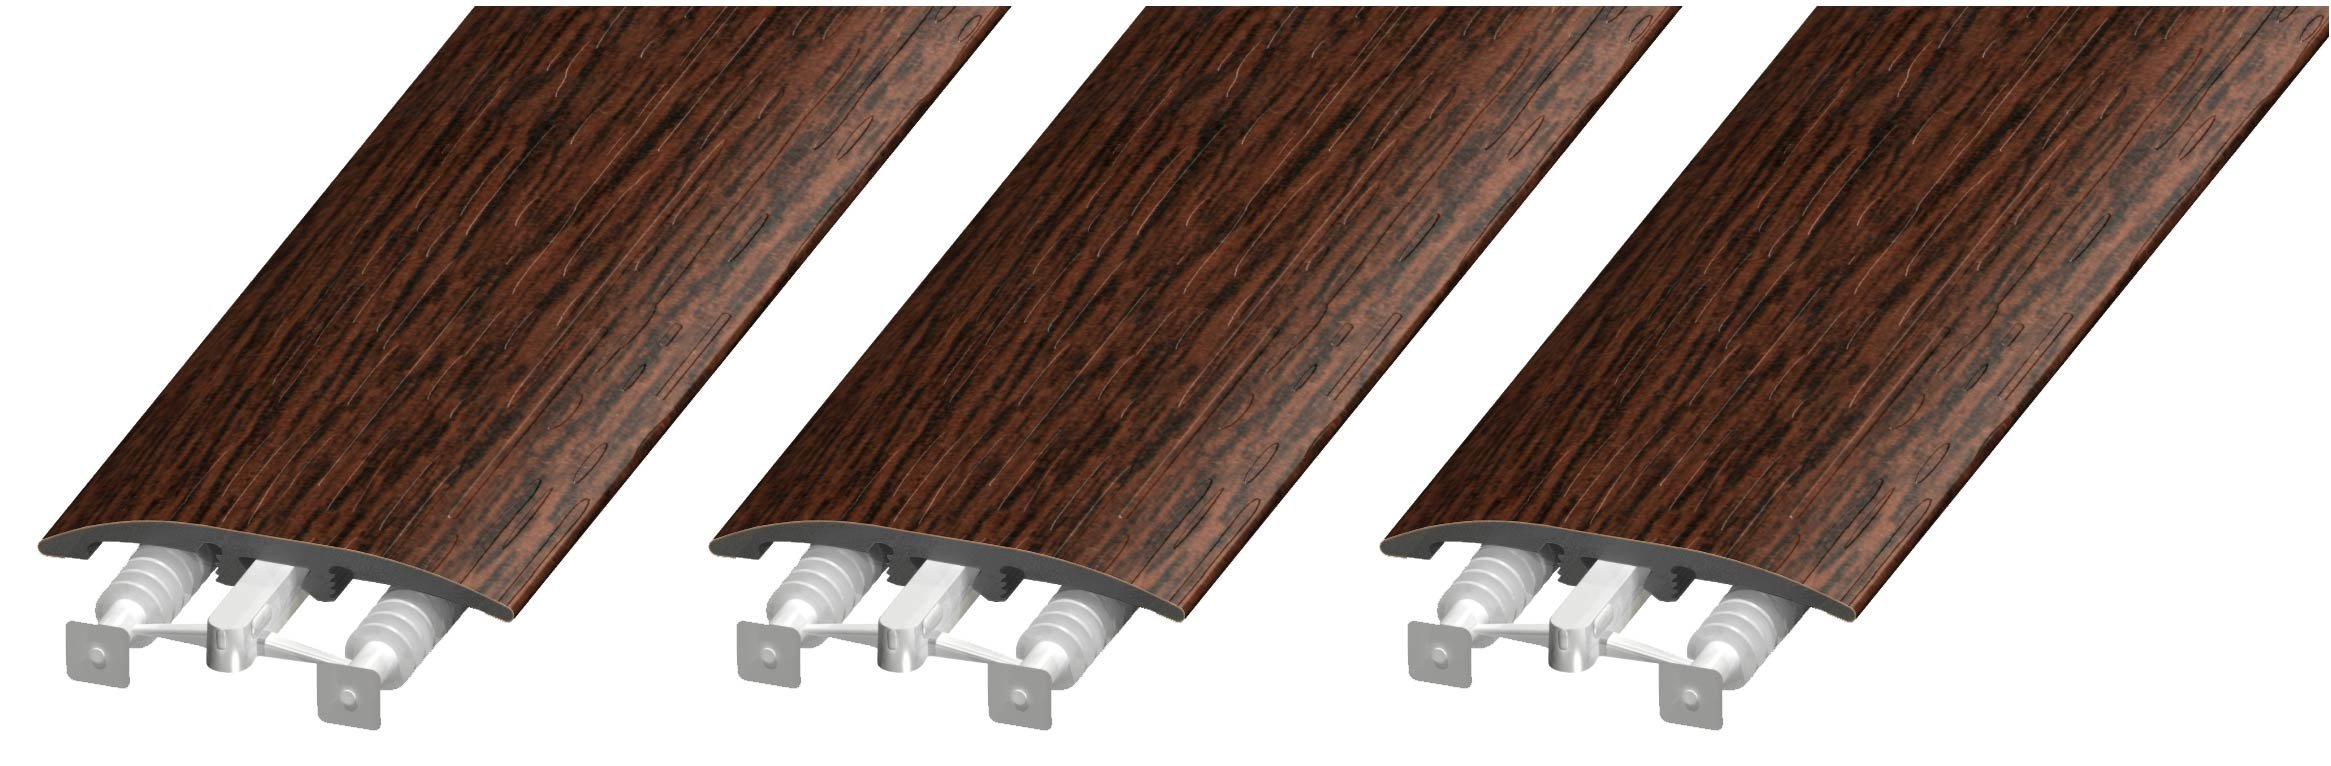 Cal-Flor MD11023 Unitrim Waterproof 3-in1 Floor Molding 2'' Wide x 94'' Long 3-in-1 Laminate, Wood, Wpc, Lvt and Vinyl, 3 Pack, Mahogany, 3 Piece by Cal-Flor